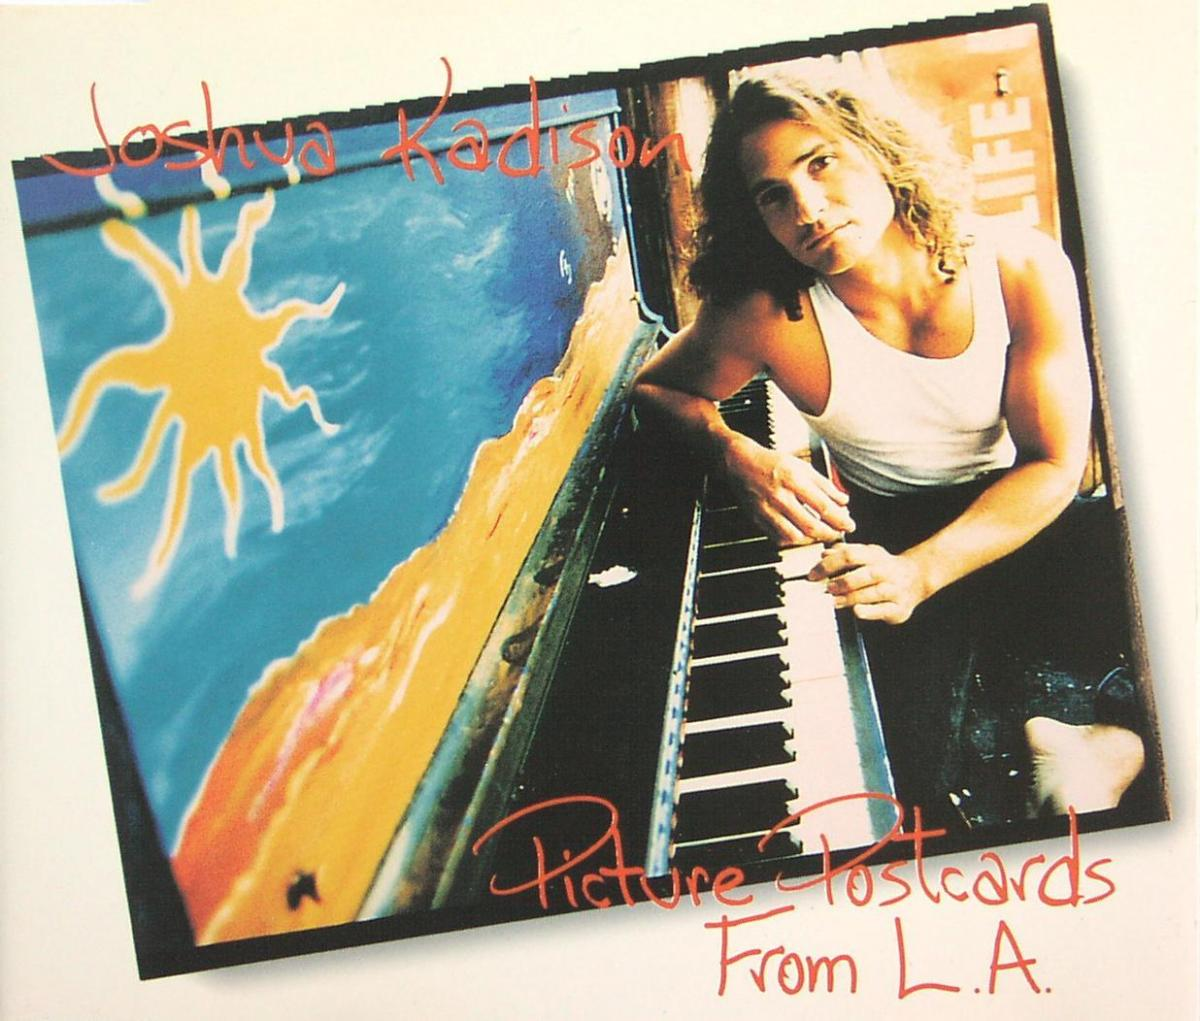 Kadison, Joshua - Picture Postcards From L.A. [CD-Single]